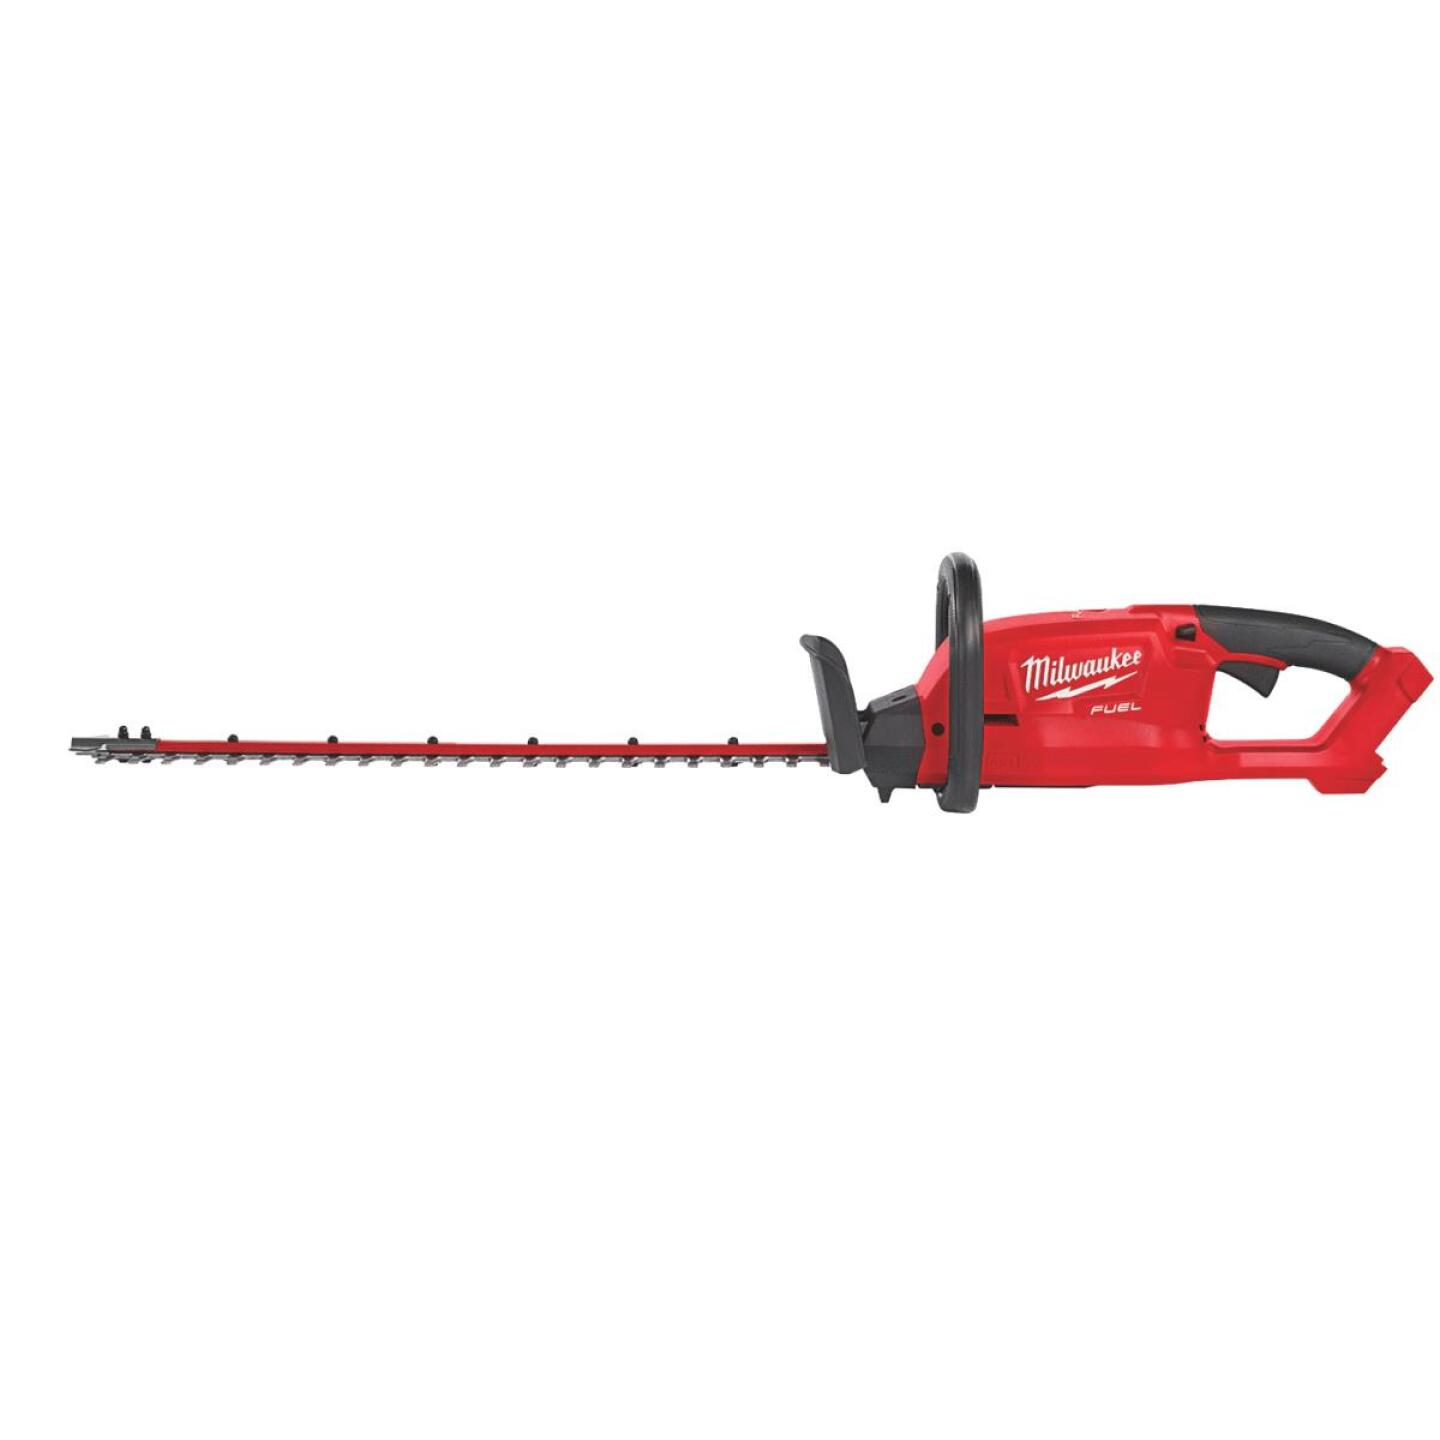 Milwaukee M18 FUEL 24 In. 18V Lithium-Ion Cordless Hedge Trimmer Image 1